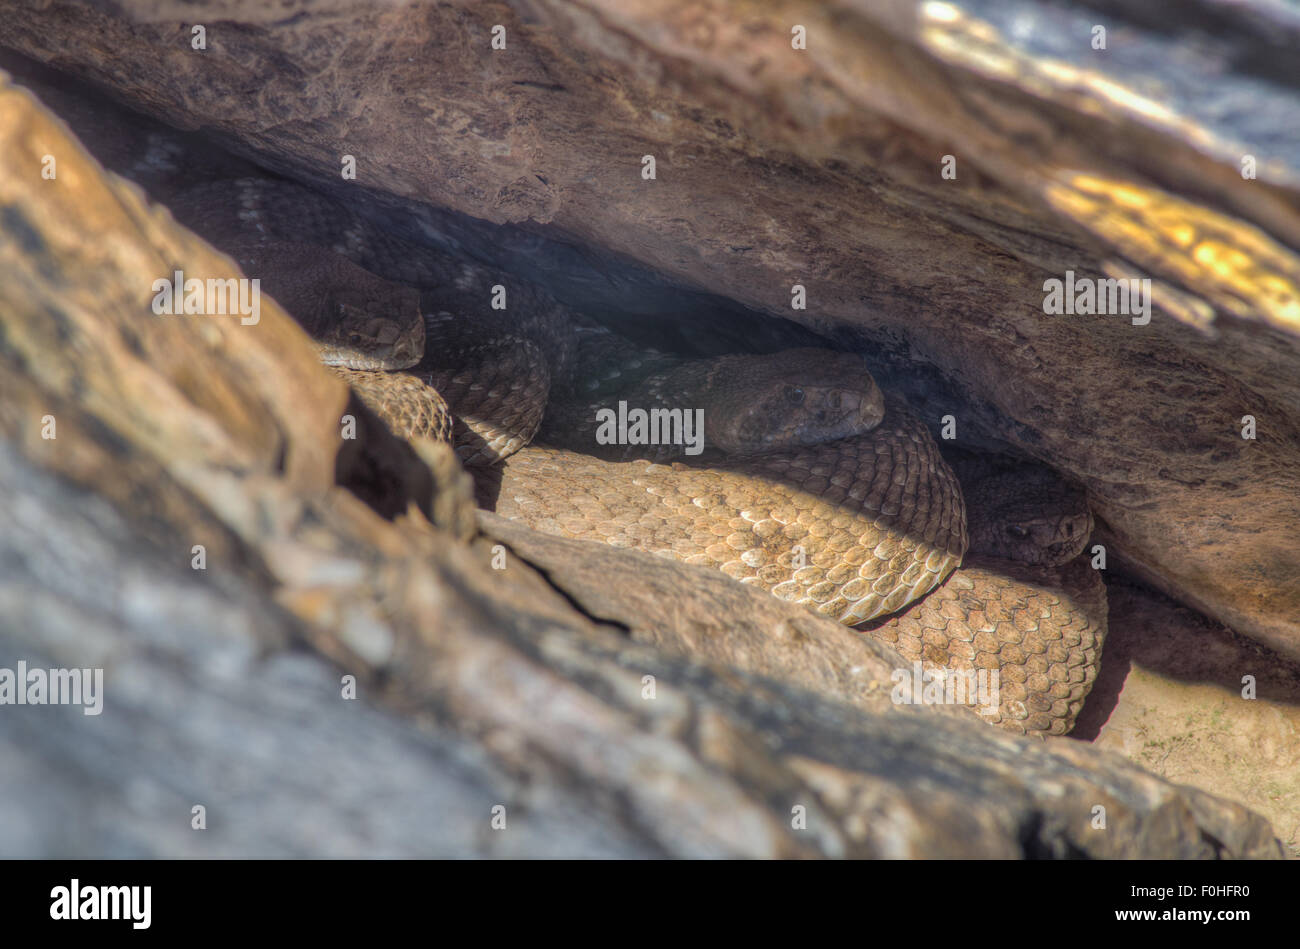 Western Diamond-backed Rattlesnakes, (Crotalus atrox), laying out at a den in New Mexico, USA. Stock Photo